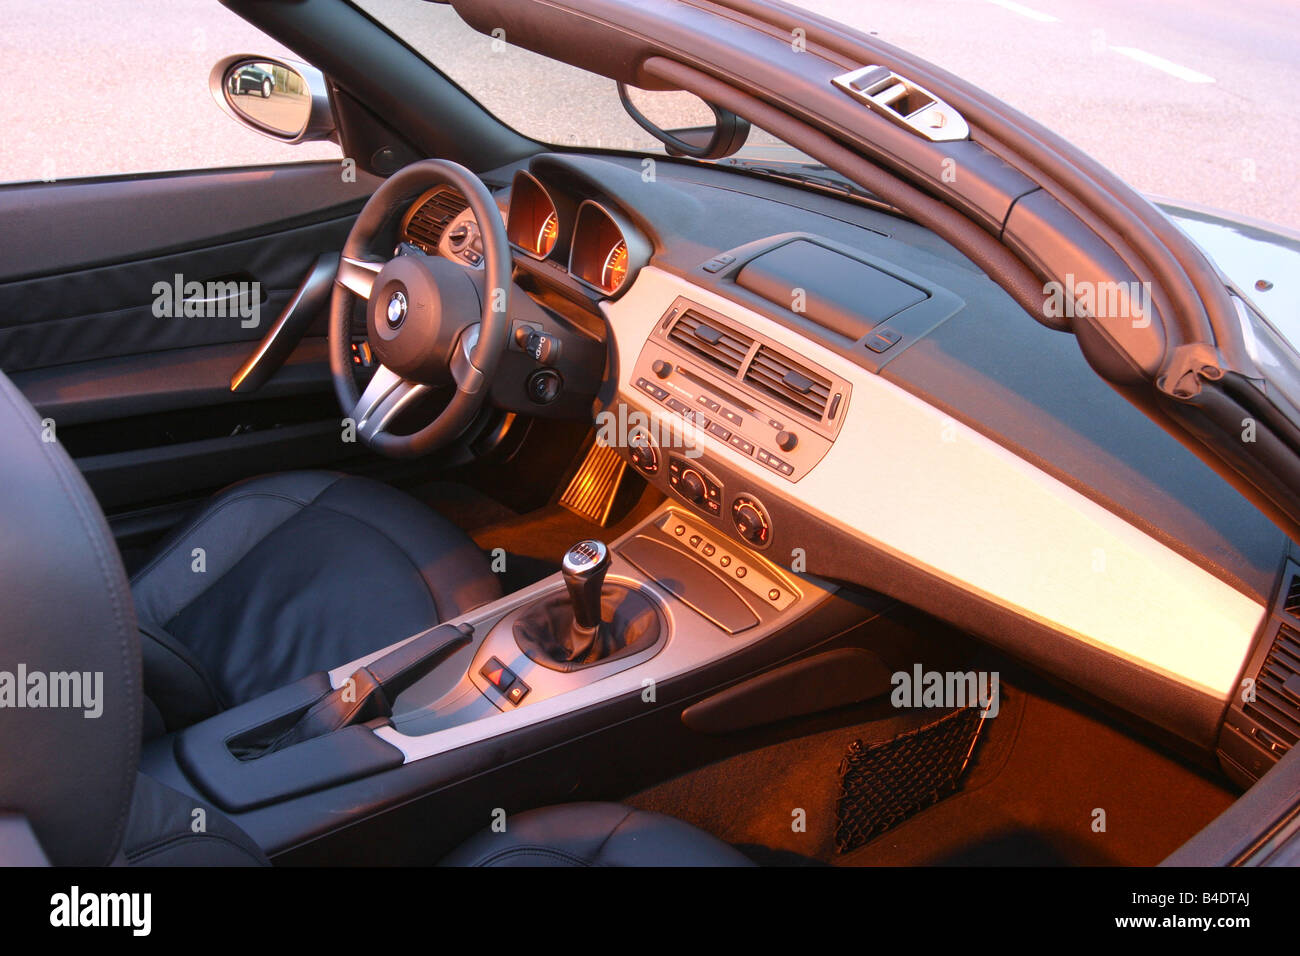 Car Bmw Z4 Convertible Model Stock Photos Amp Car Bmw Z4